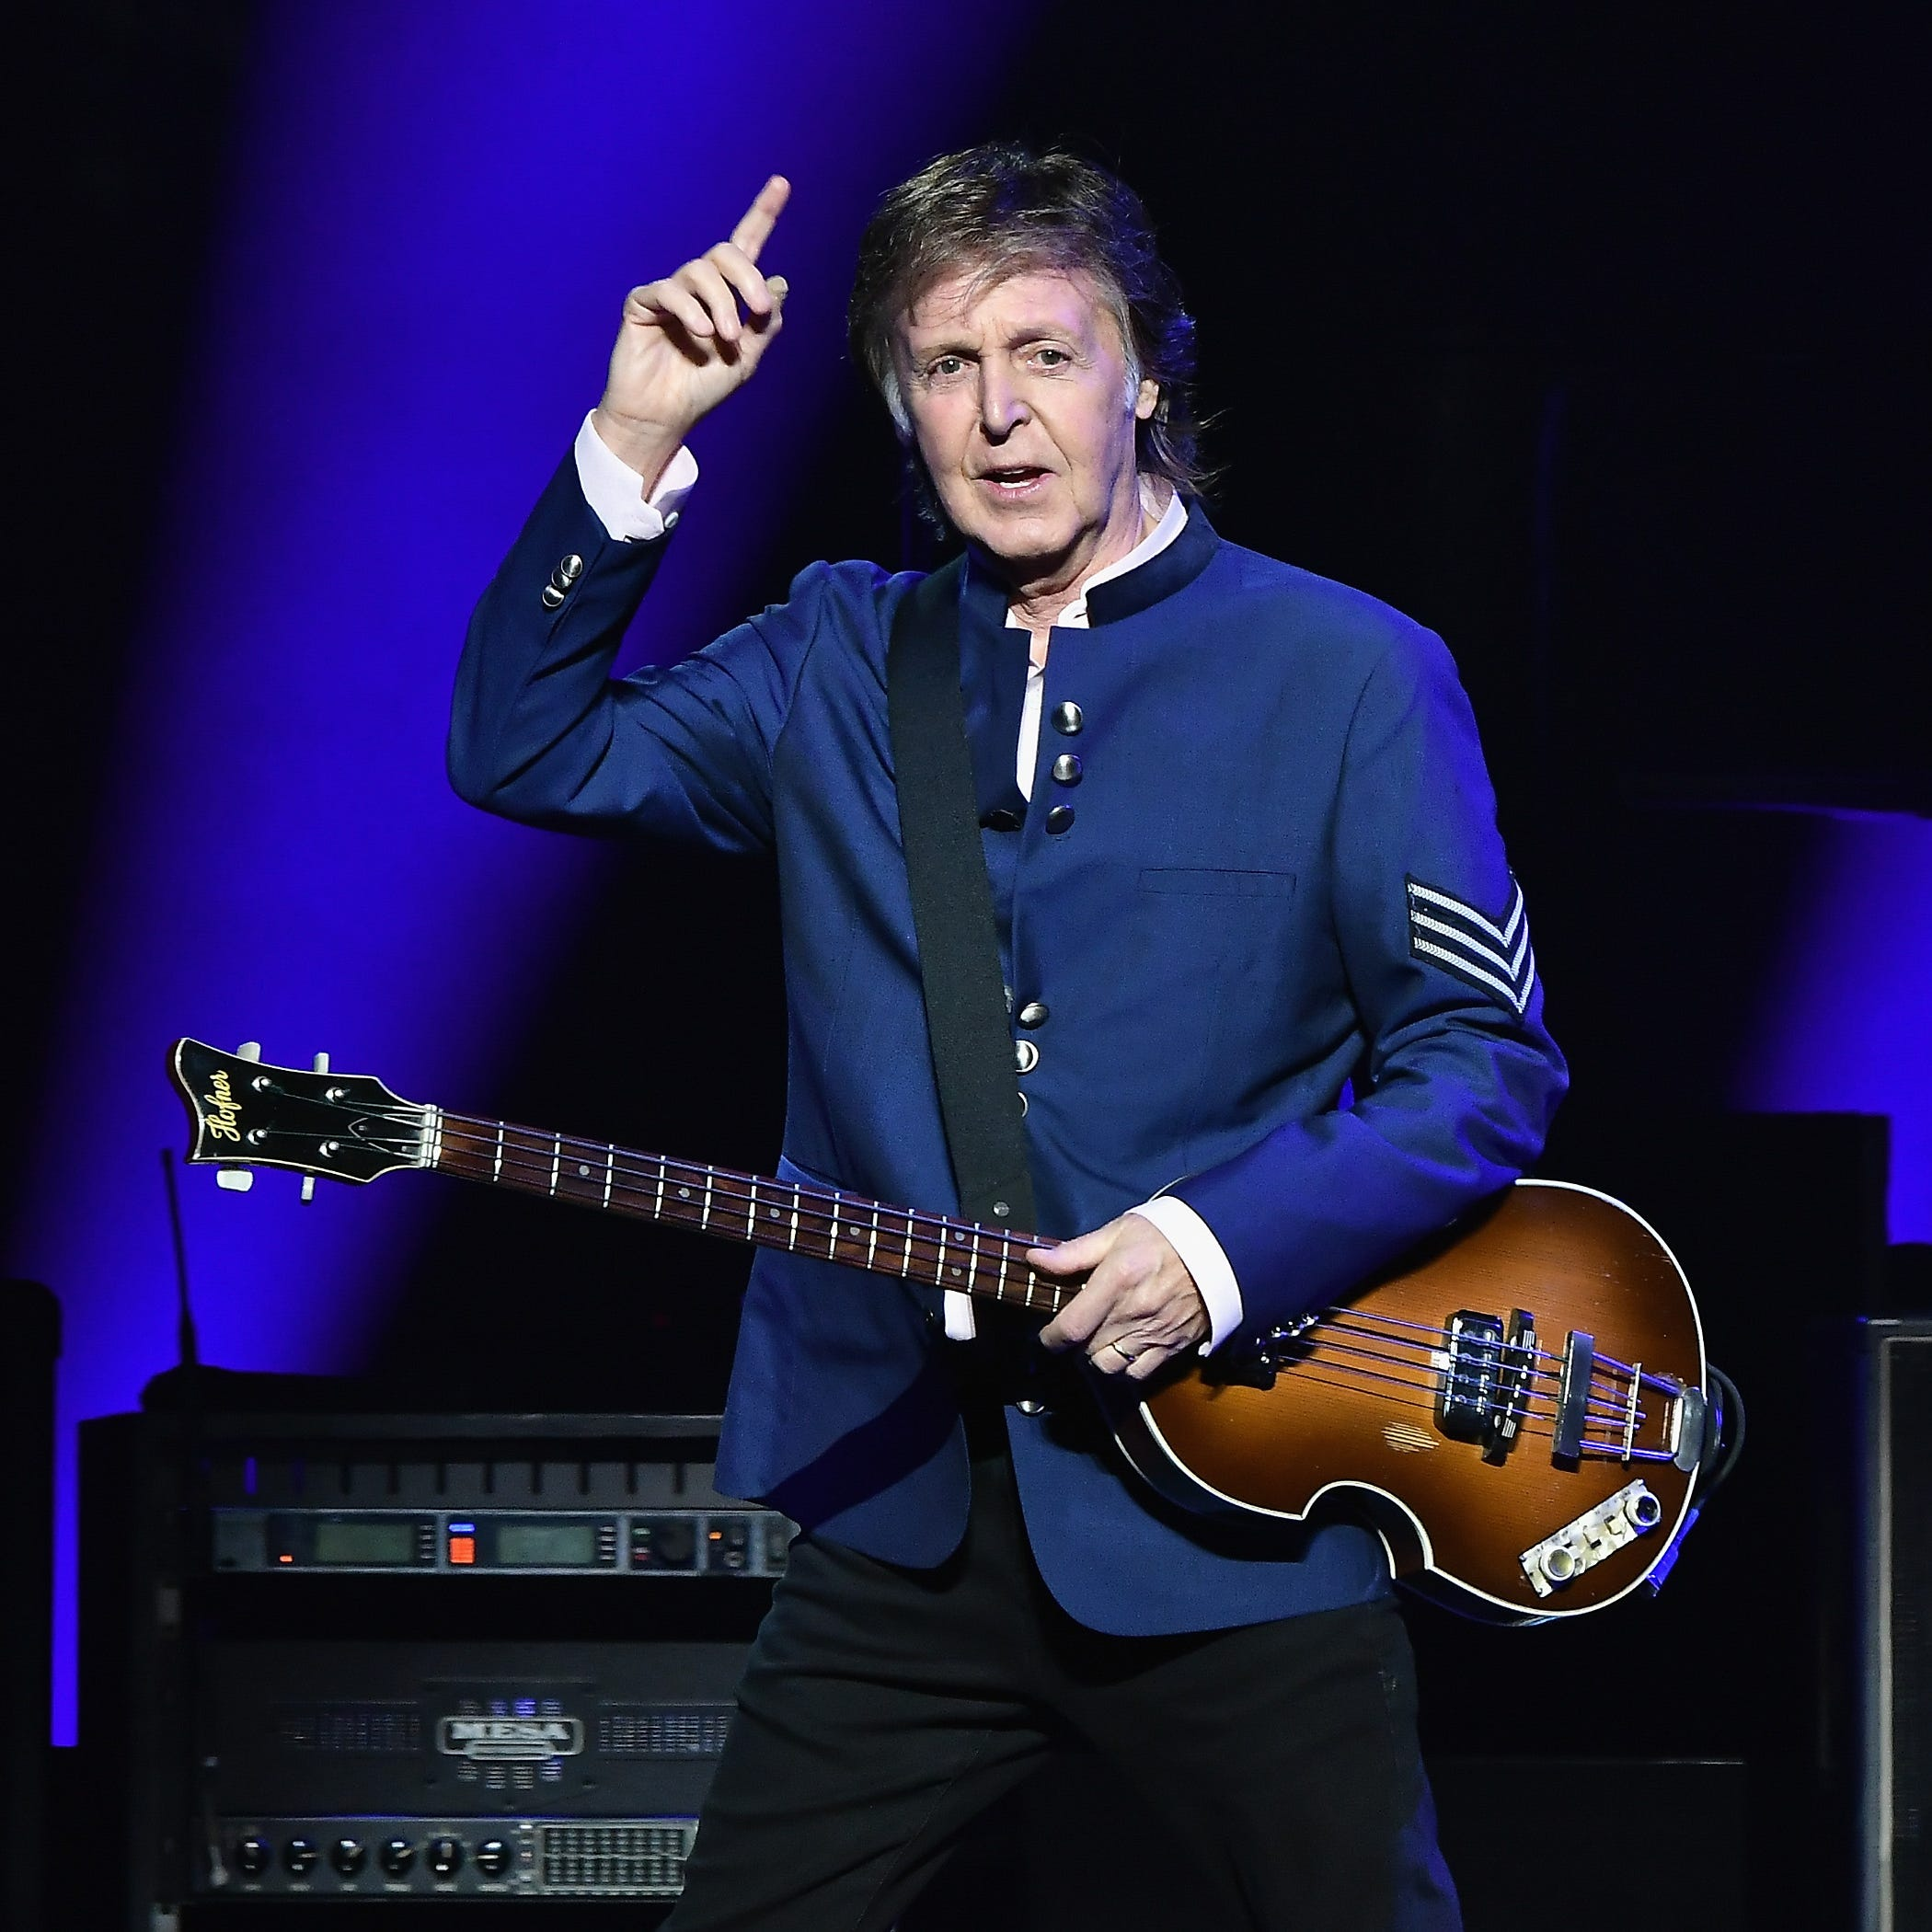 Get back, Donald Trump: Paul McCartney takes on the president on new album